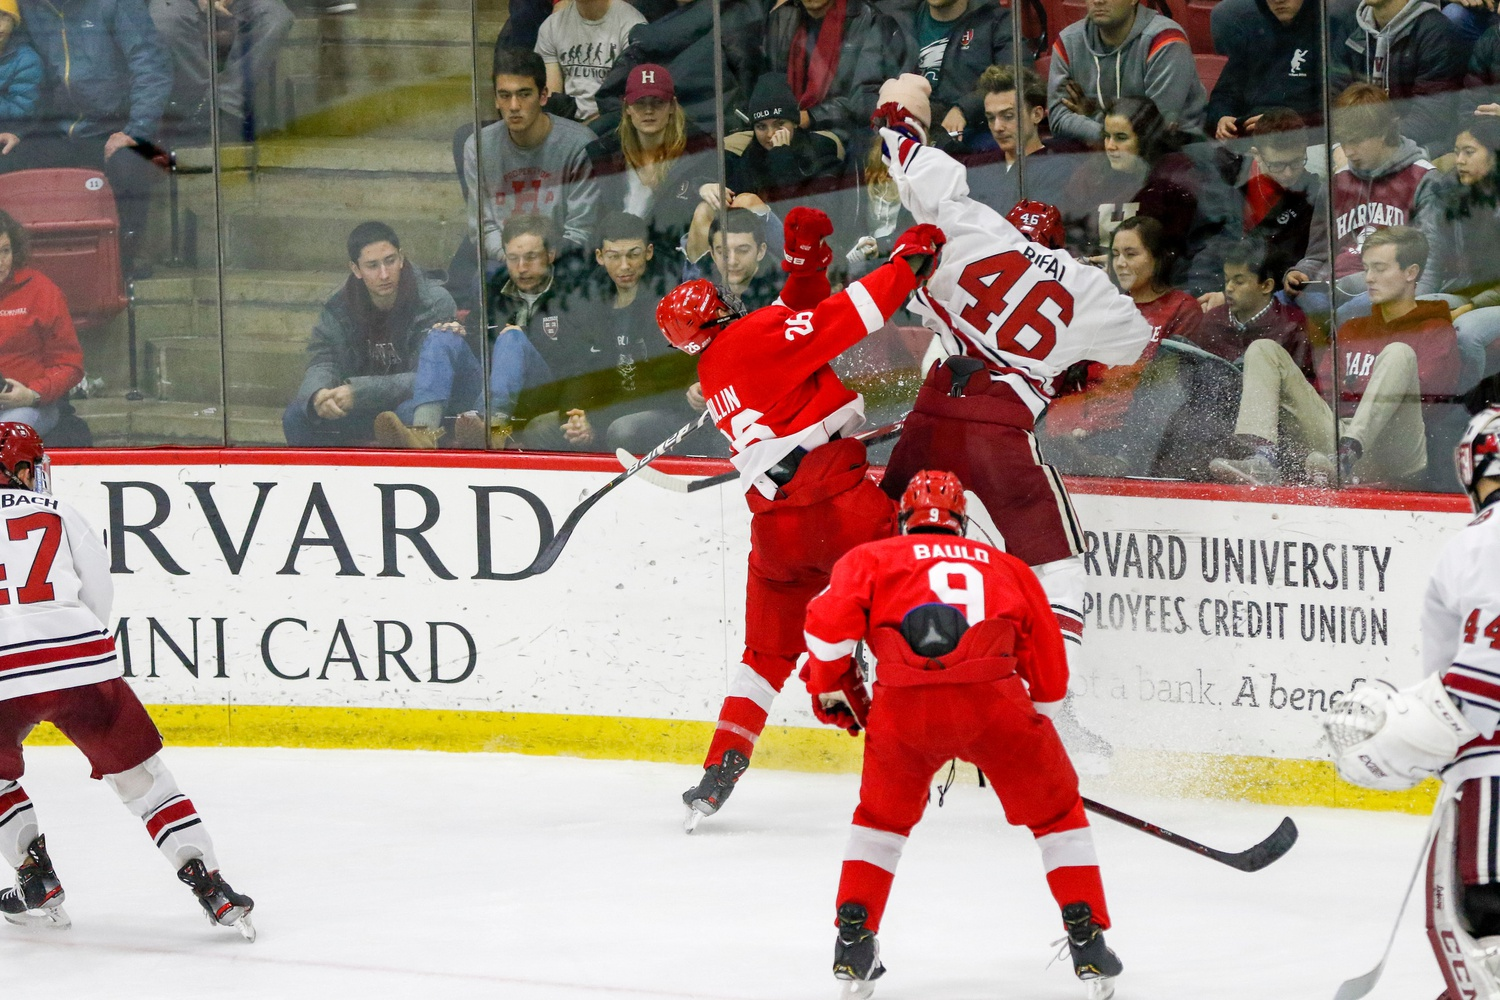 Cornell brought a physical style to the Bright-Landry Hockey Center on Friday. A somewhat undersized team that favors skill to physicality, the Crimson was forced to play a style out of its comfort zone.